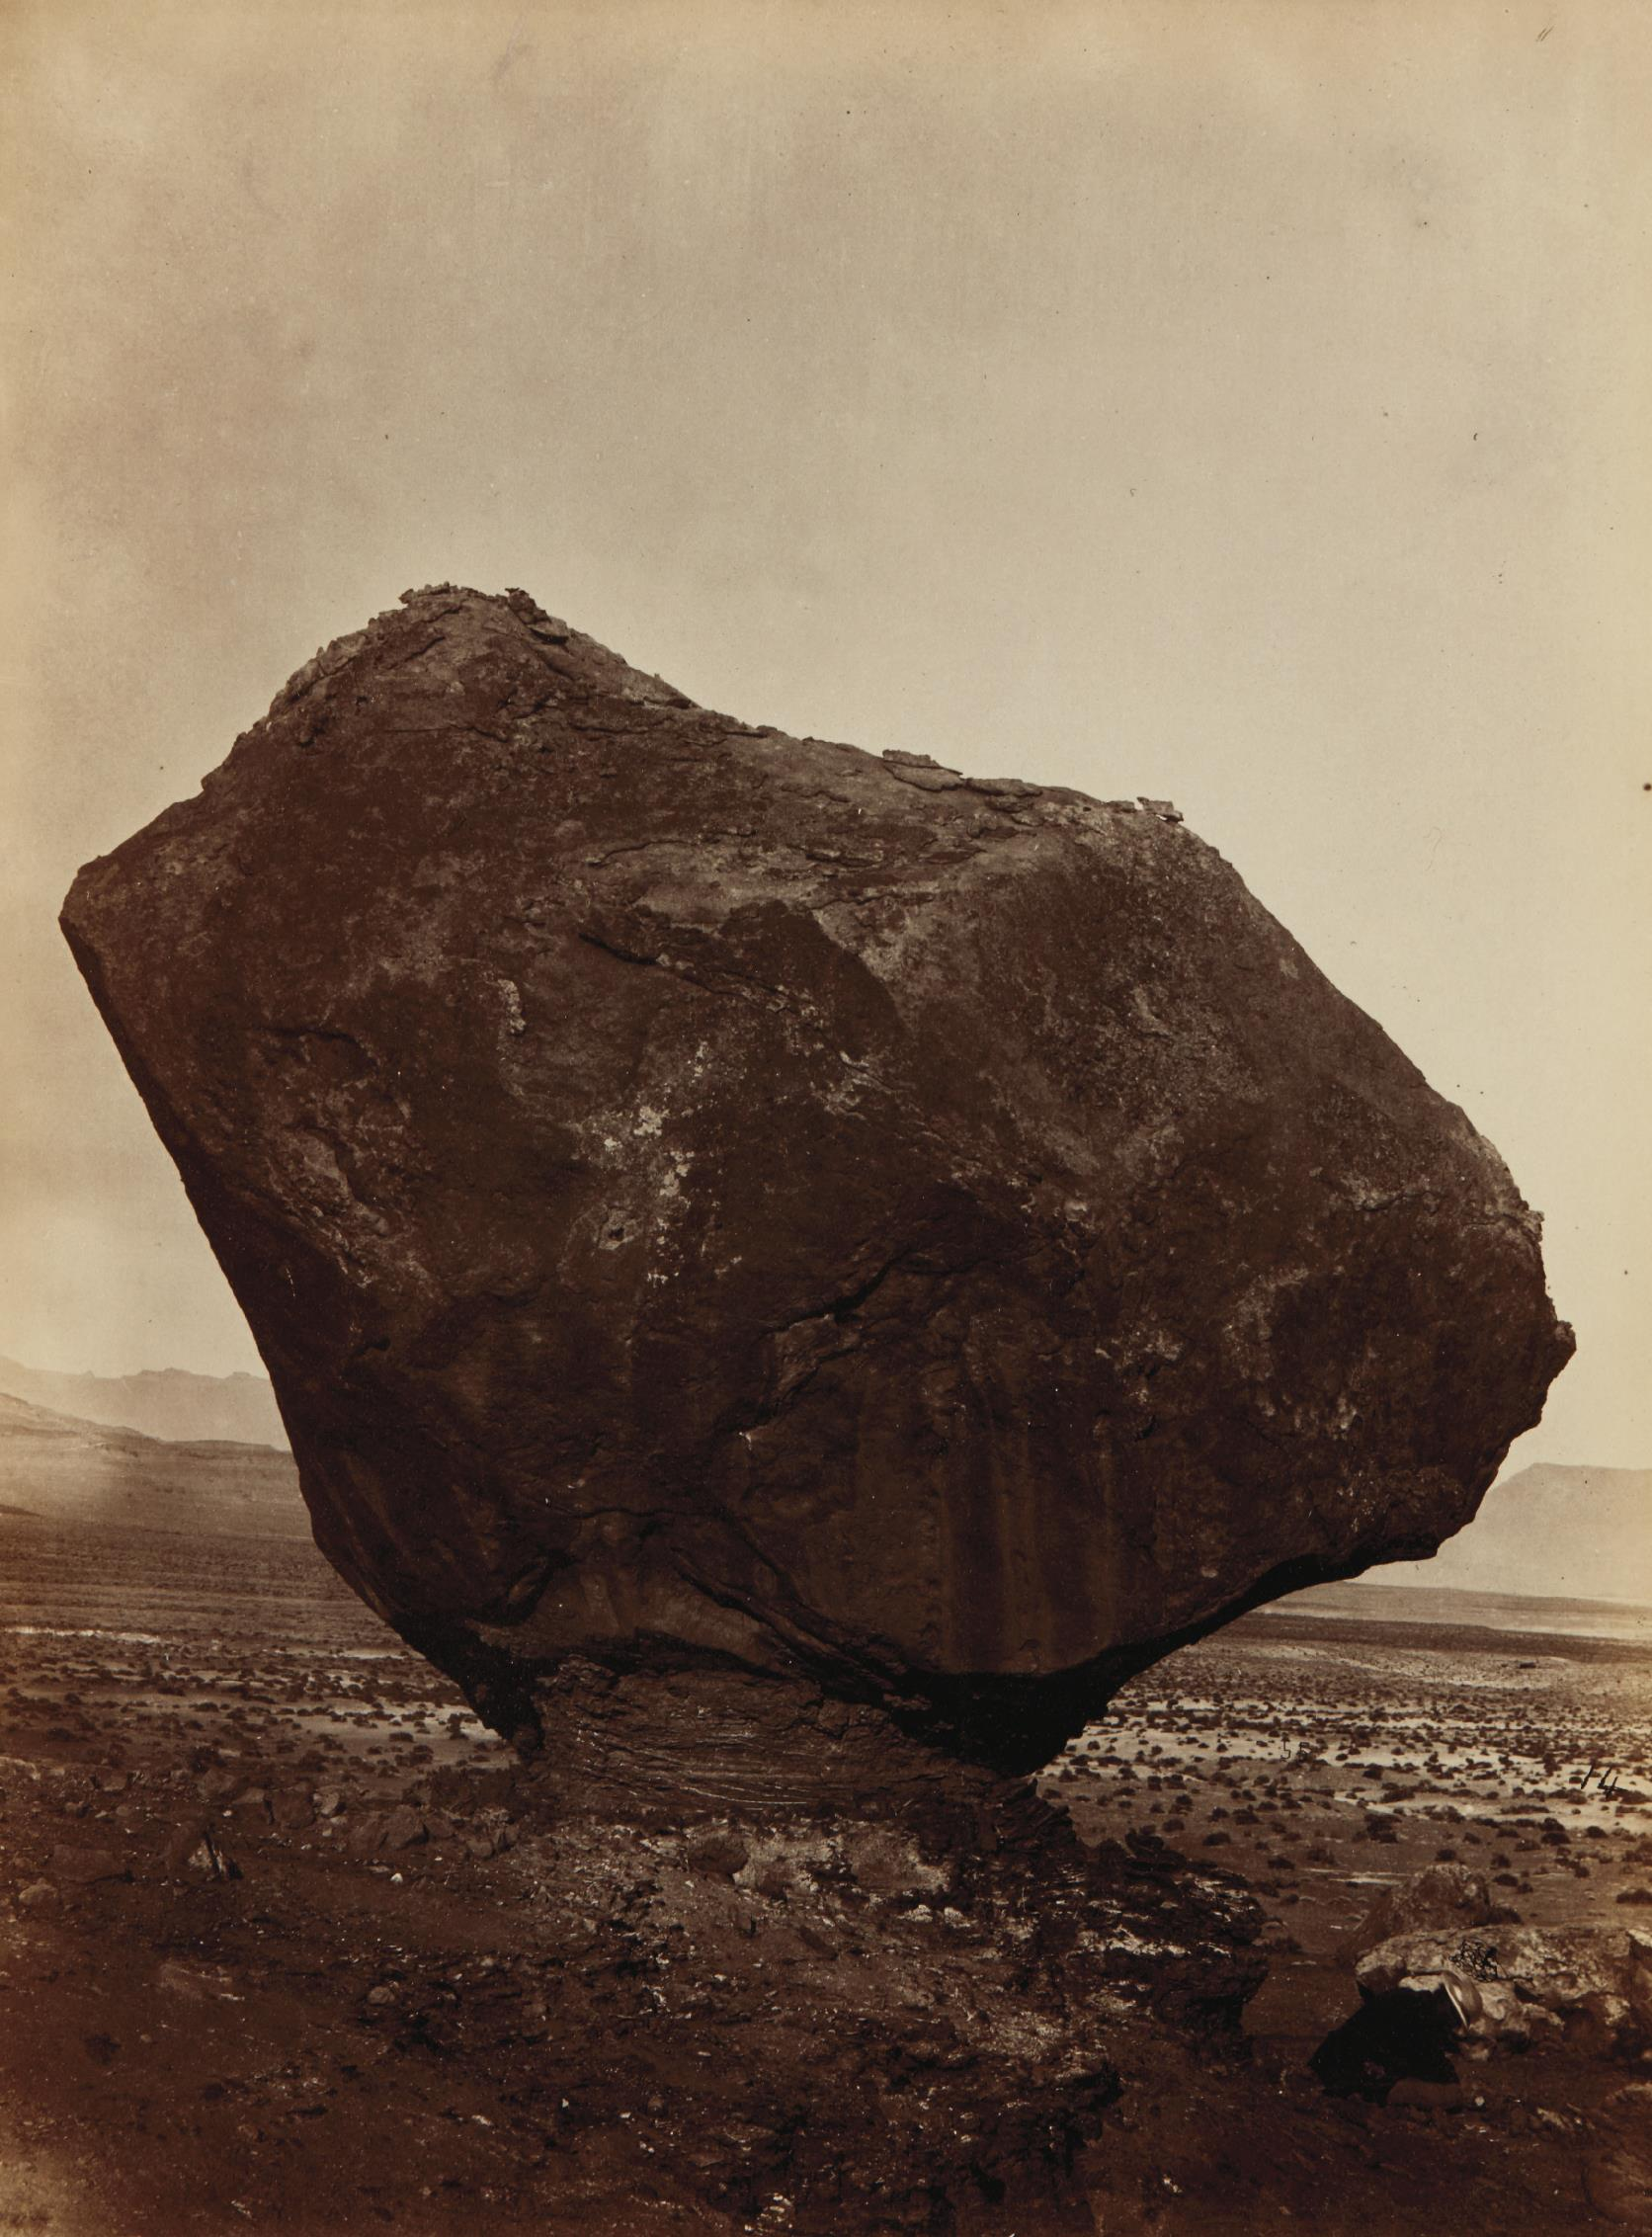 William Bell-Perched Rock, Rocker Creek, Arizona-1872